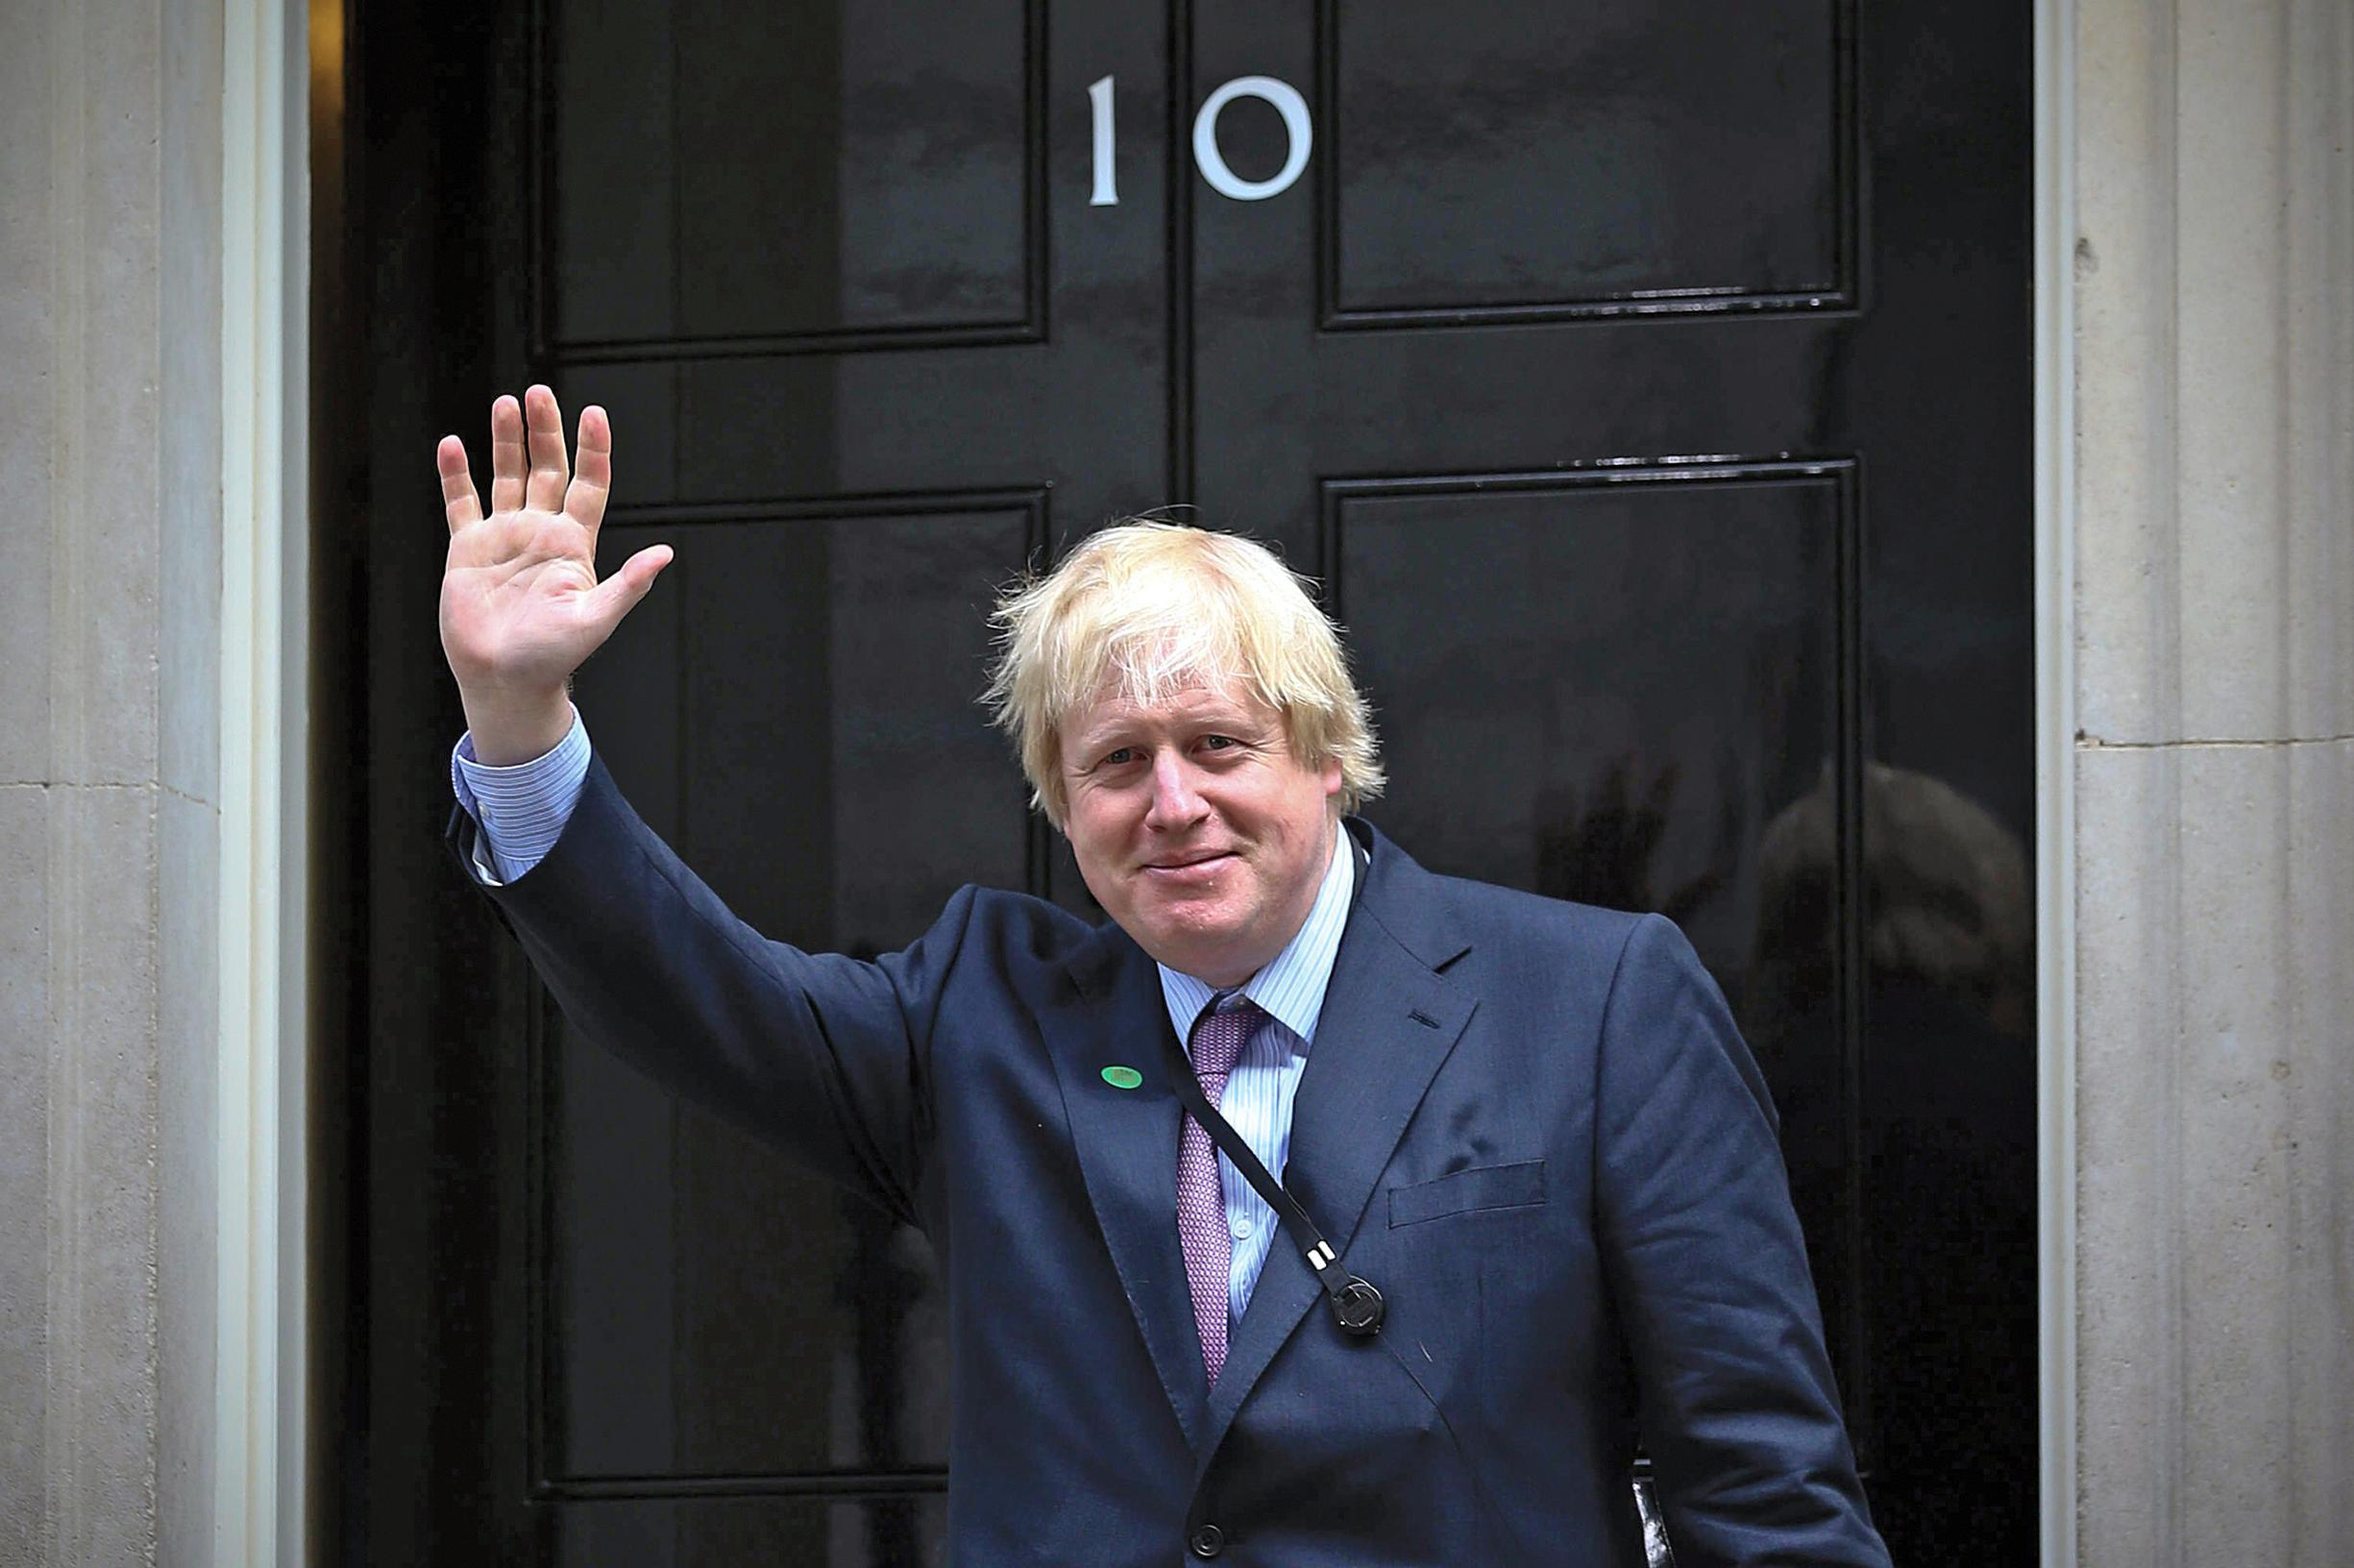 Will Boris Johnson's appointment as Prime Minister signal the death-knell for HS2?